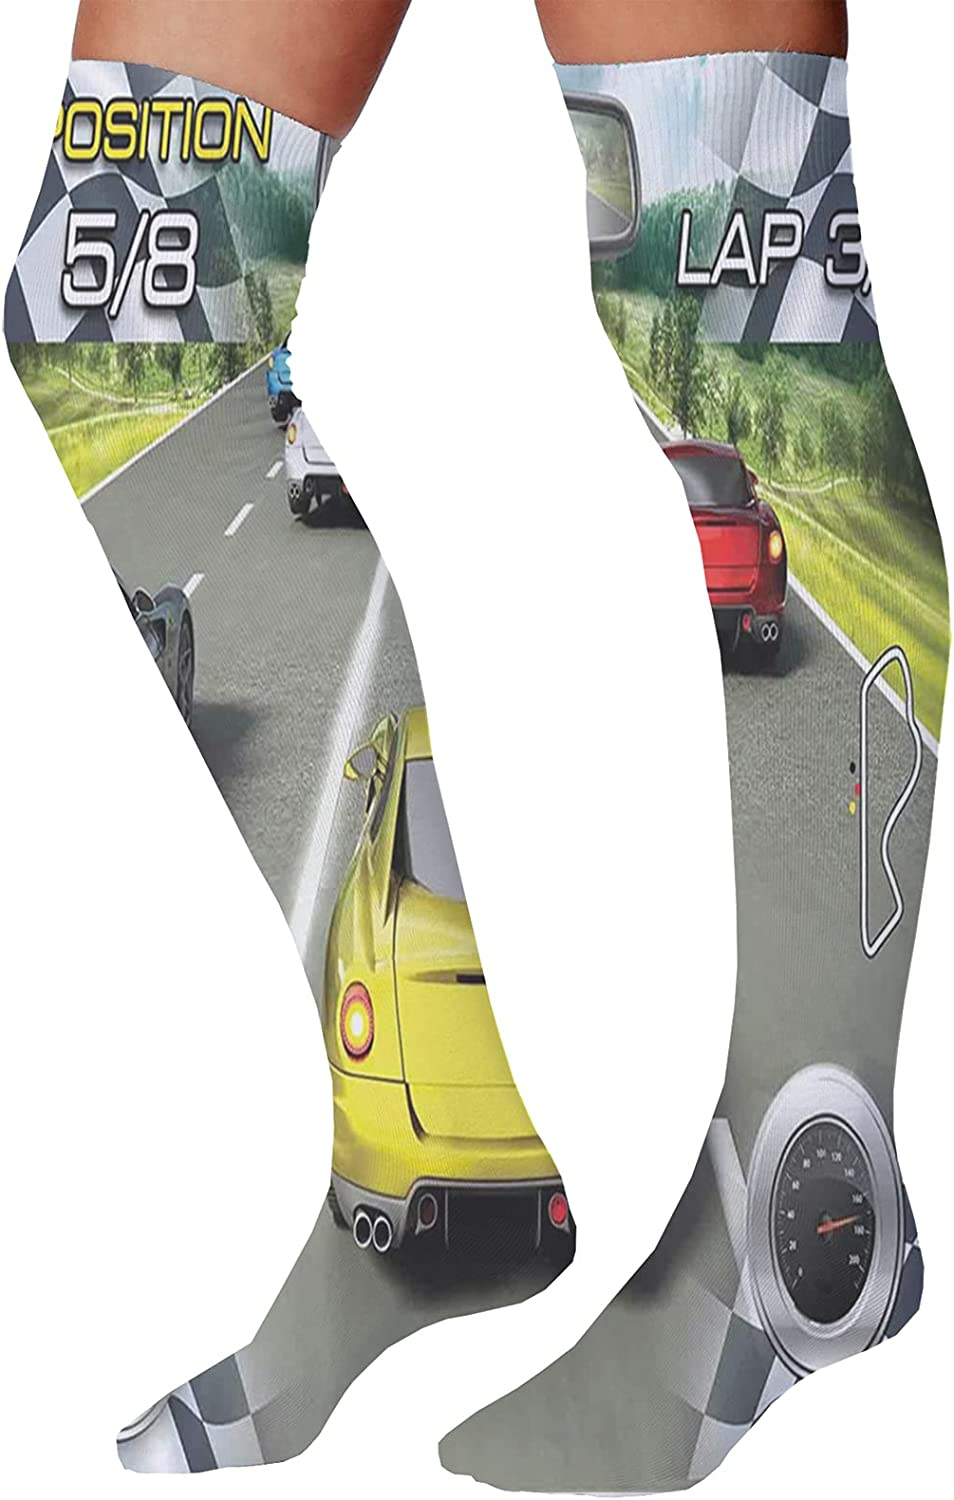 Unisex Dress Cool Colorful Fancy Novelty Funny Casual Combed Cotton Crew Socks,Car Racing Speedy Inspired Illustration Need for Speed Road Competition Motorsports Theme